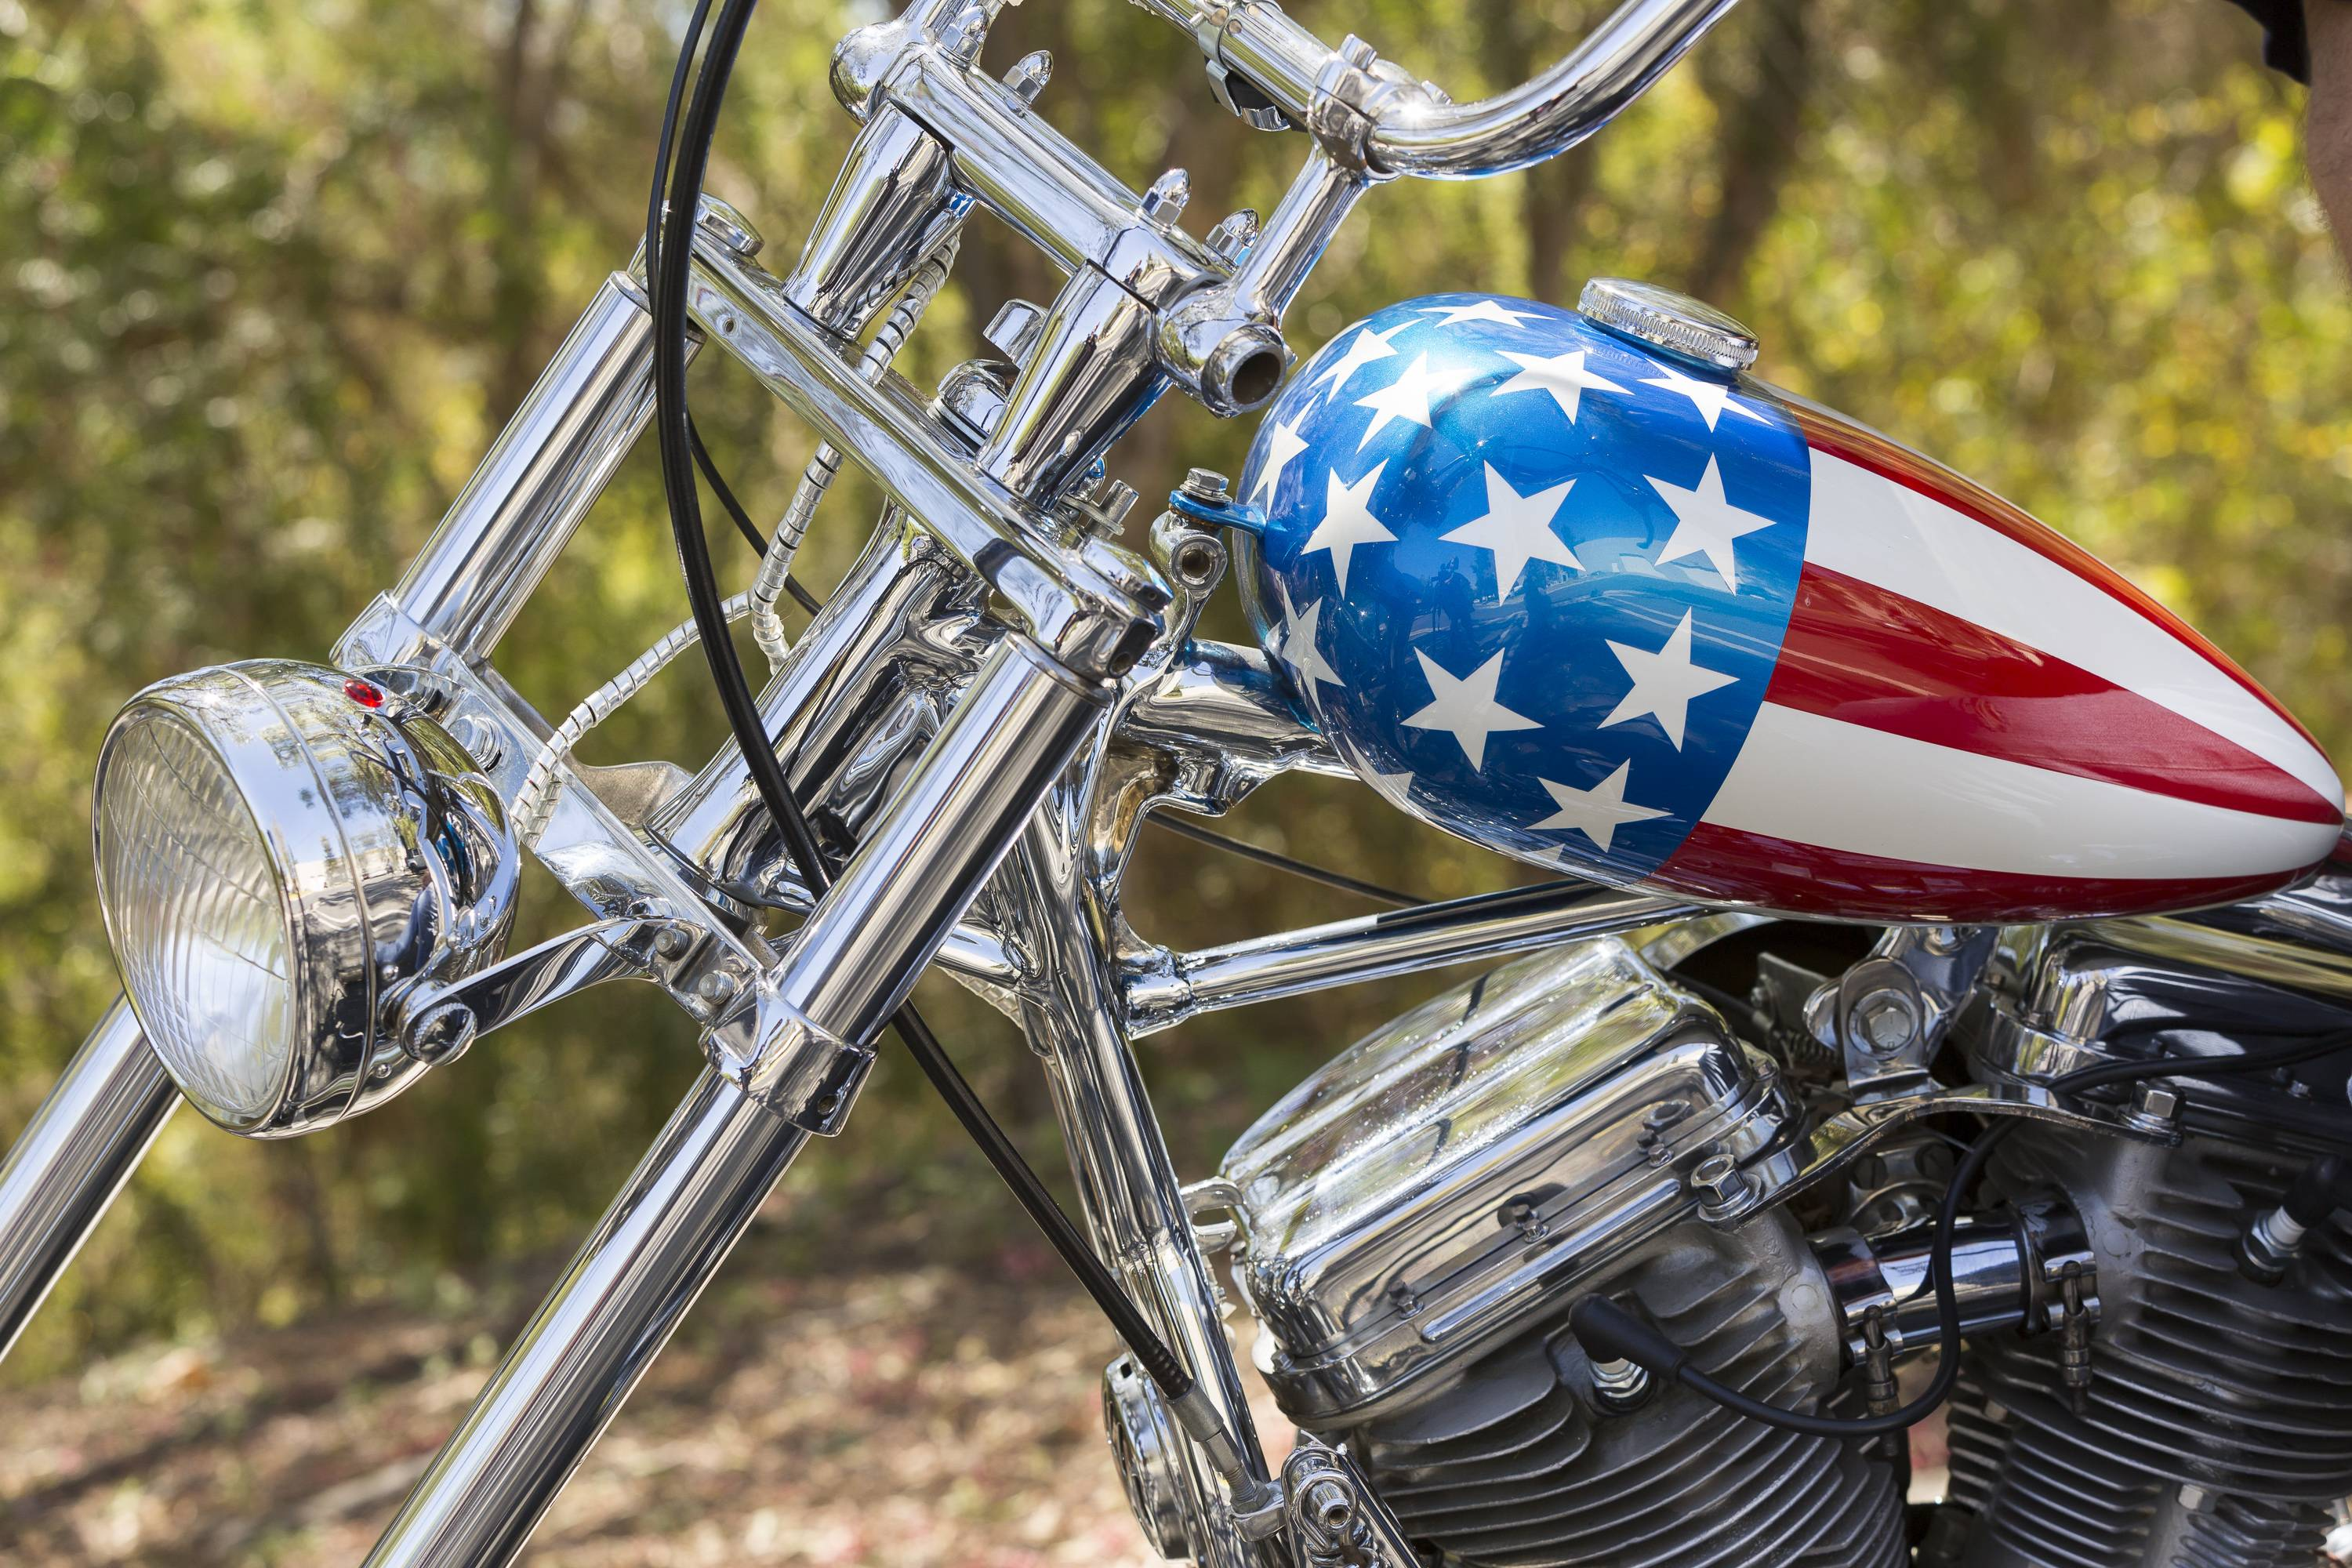 "The Captain America chopper Peter Fonda rode in ""Easy Rider"" is one of the most recognizable motorcycles of all time."